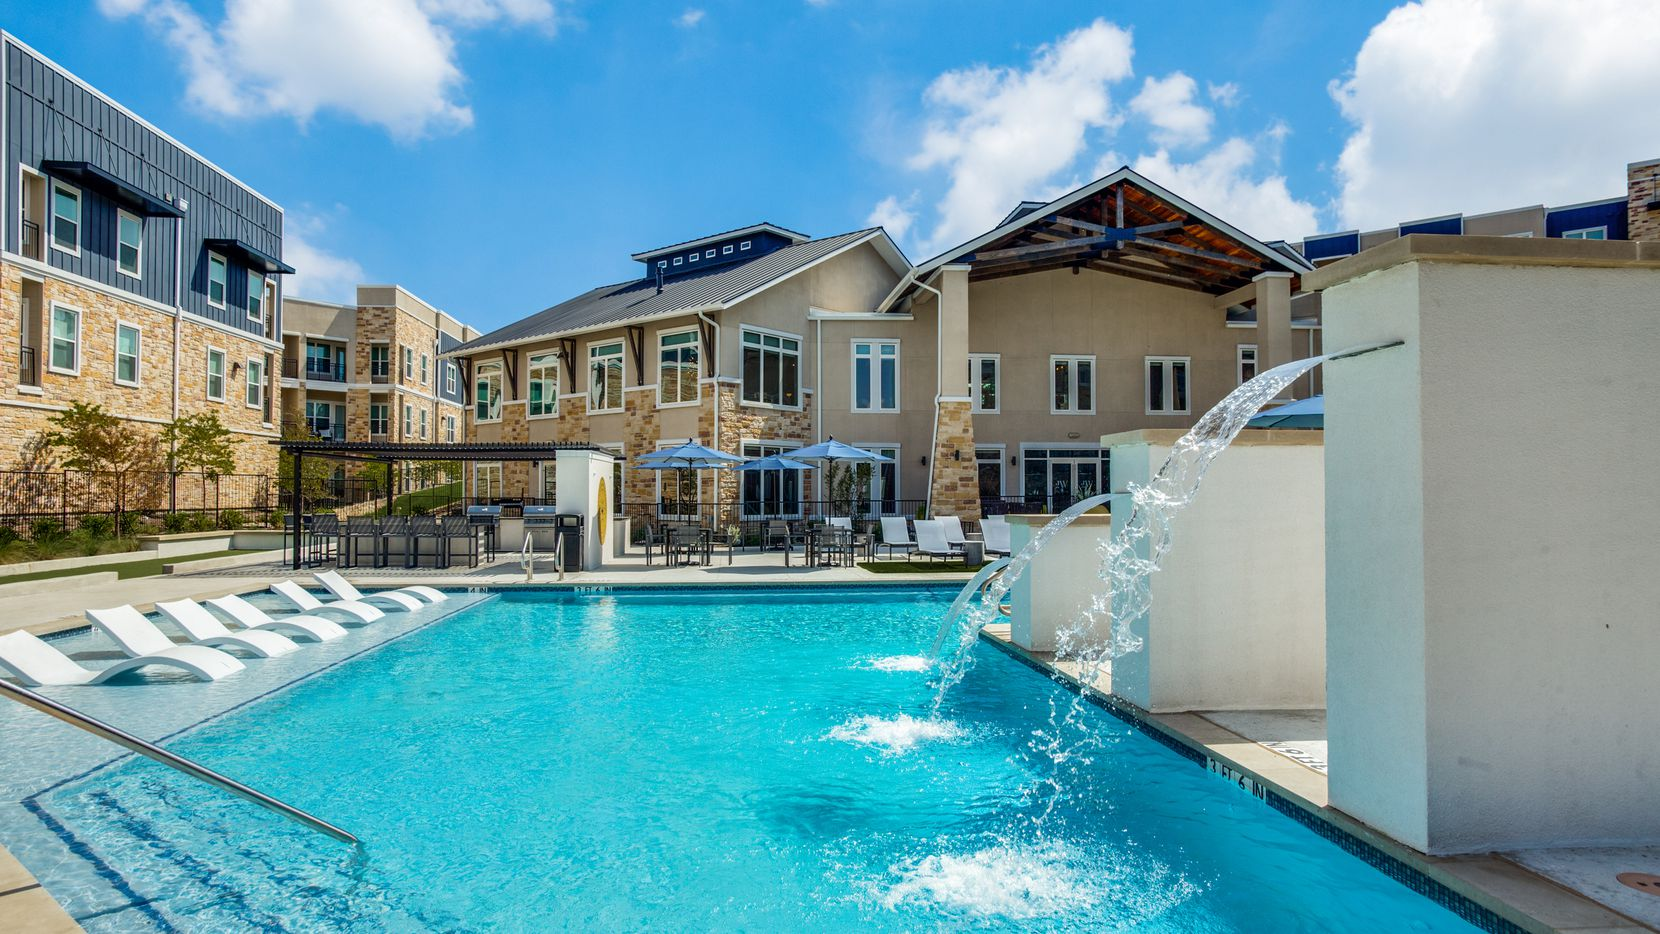 Lone Star Funds acquired the Jefferson Woodland apartments on Garland Avenue.